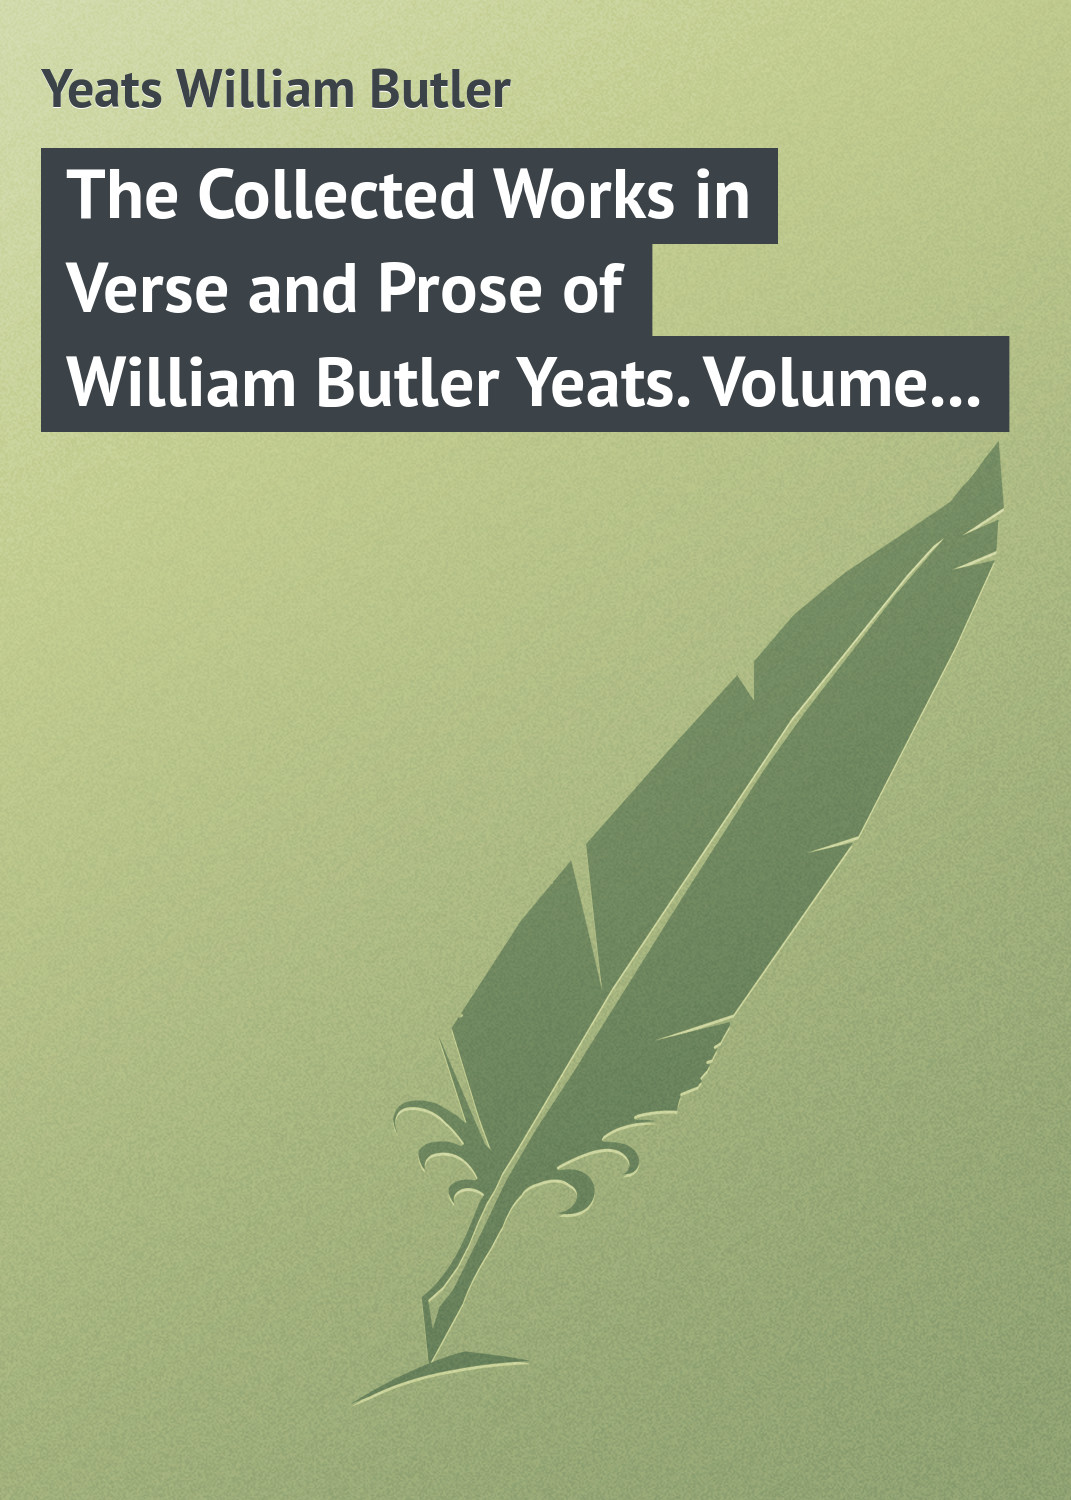 William Butler Yeats The Collected Works in Verse and Prose of William Butler Yeats. Volume 8 of 8. Discoveries. Edmund Spenser. Poetry and Tradition; and Other Essays. Bibliography william butler yeats the tables of the law